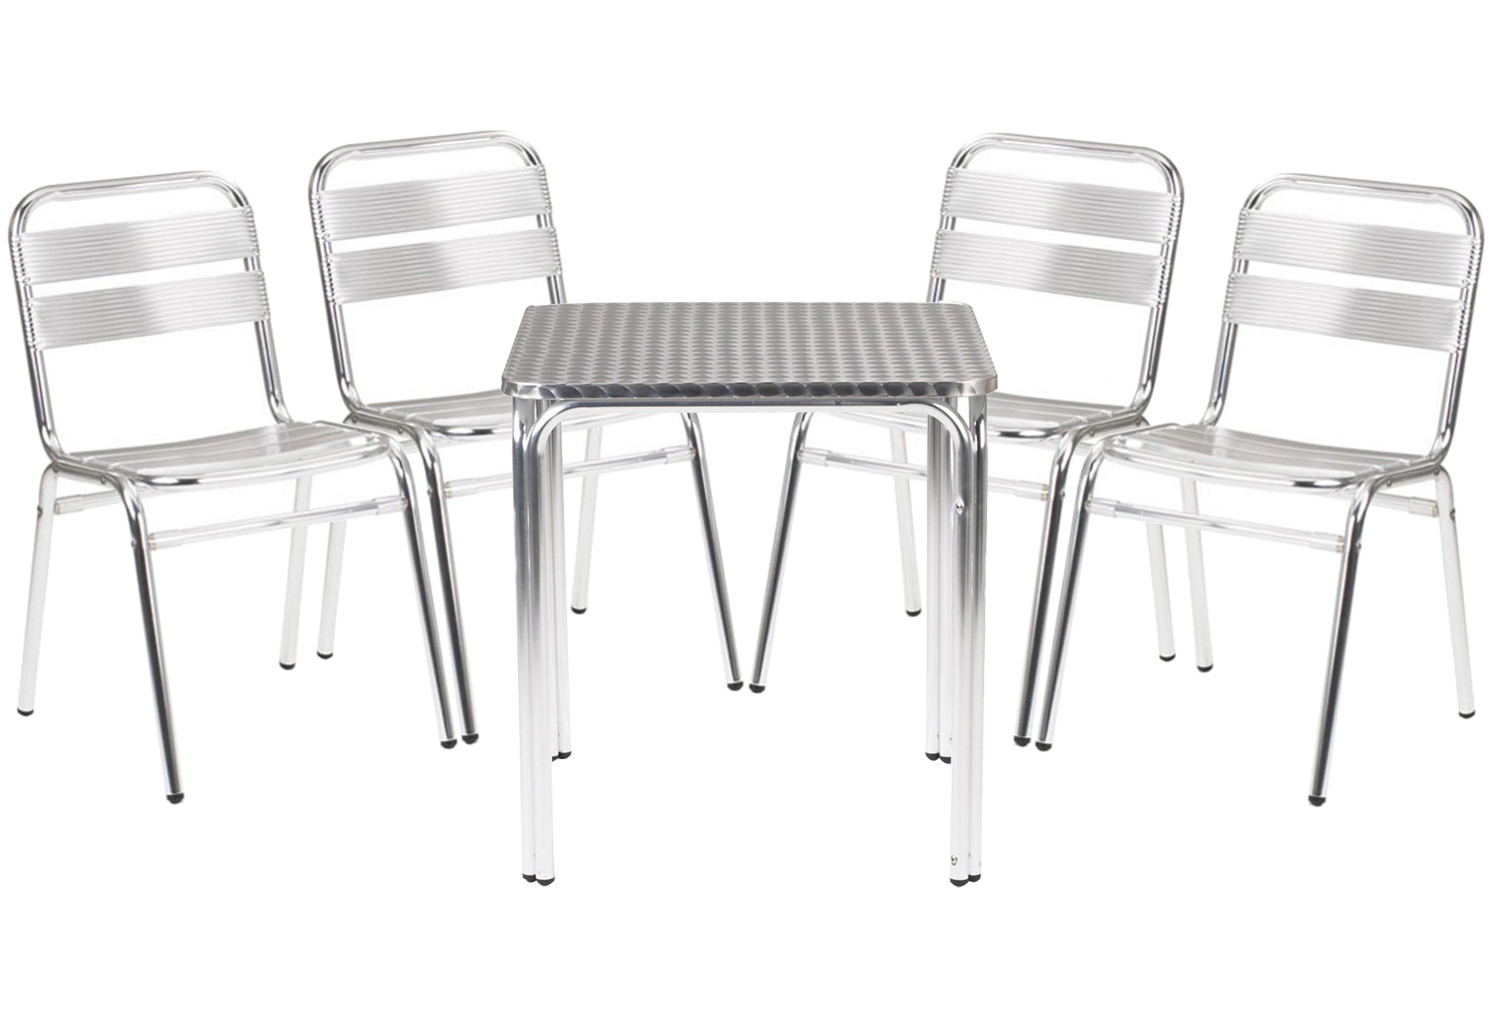 Rio aluminium square table and 4 chairs